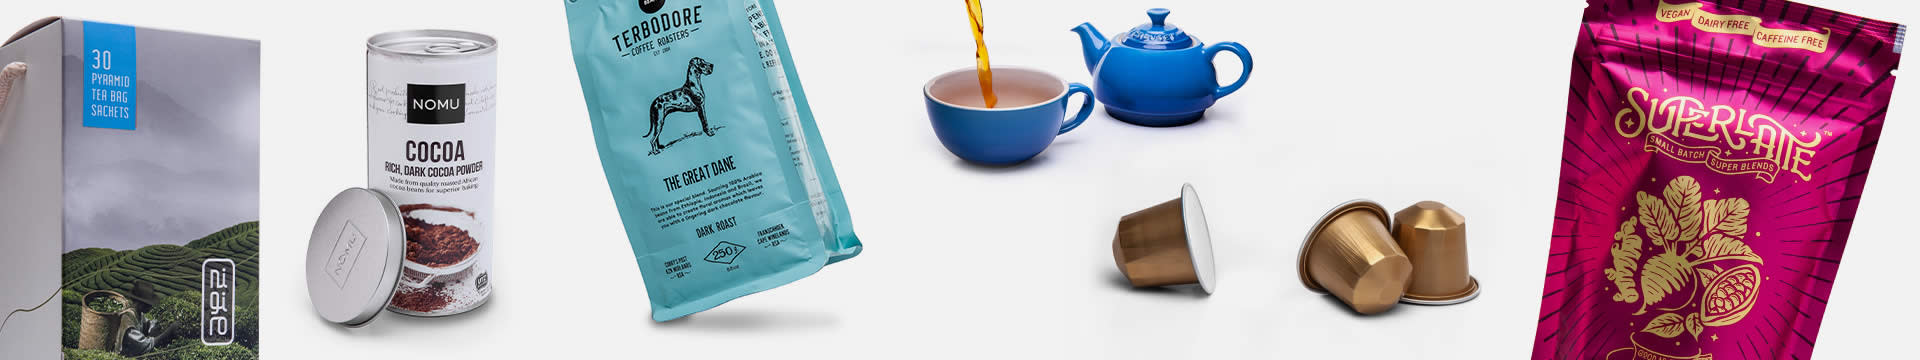 Banner image of Coffee, Tea & Beverages